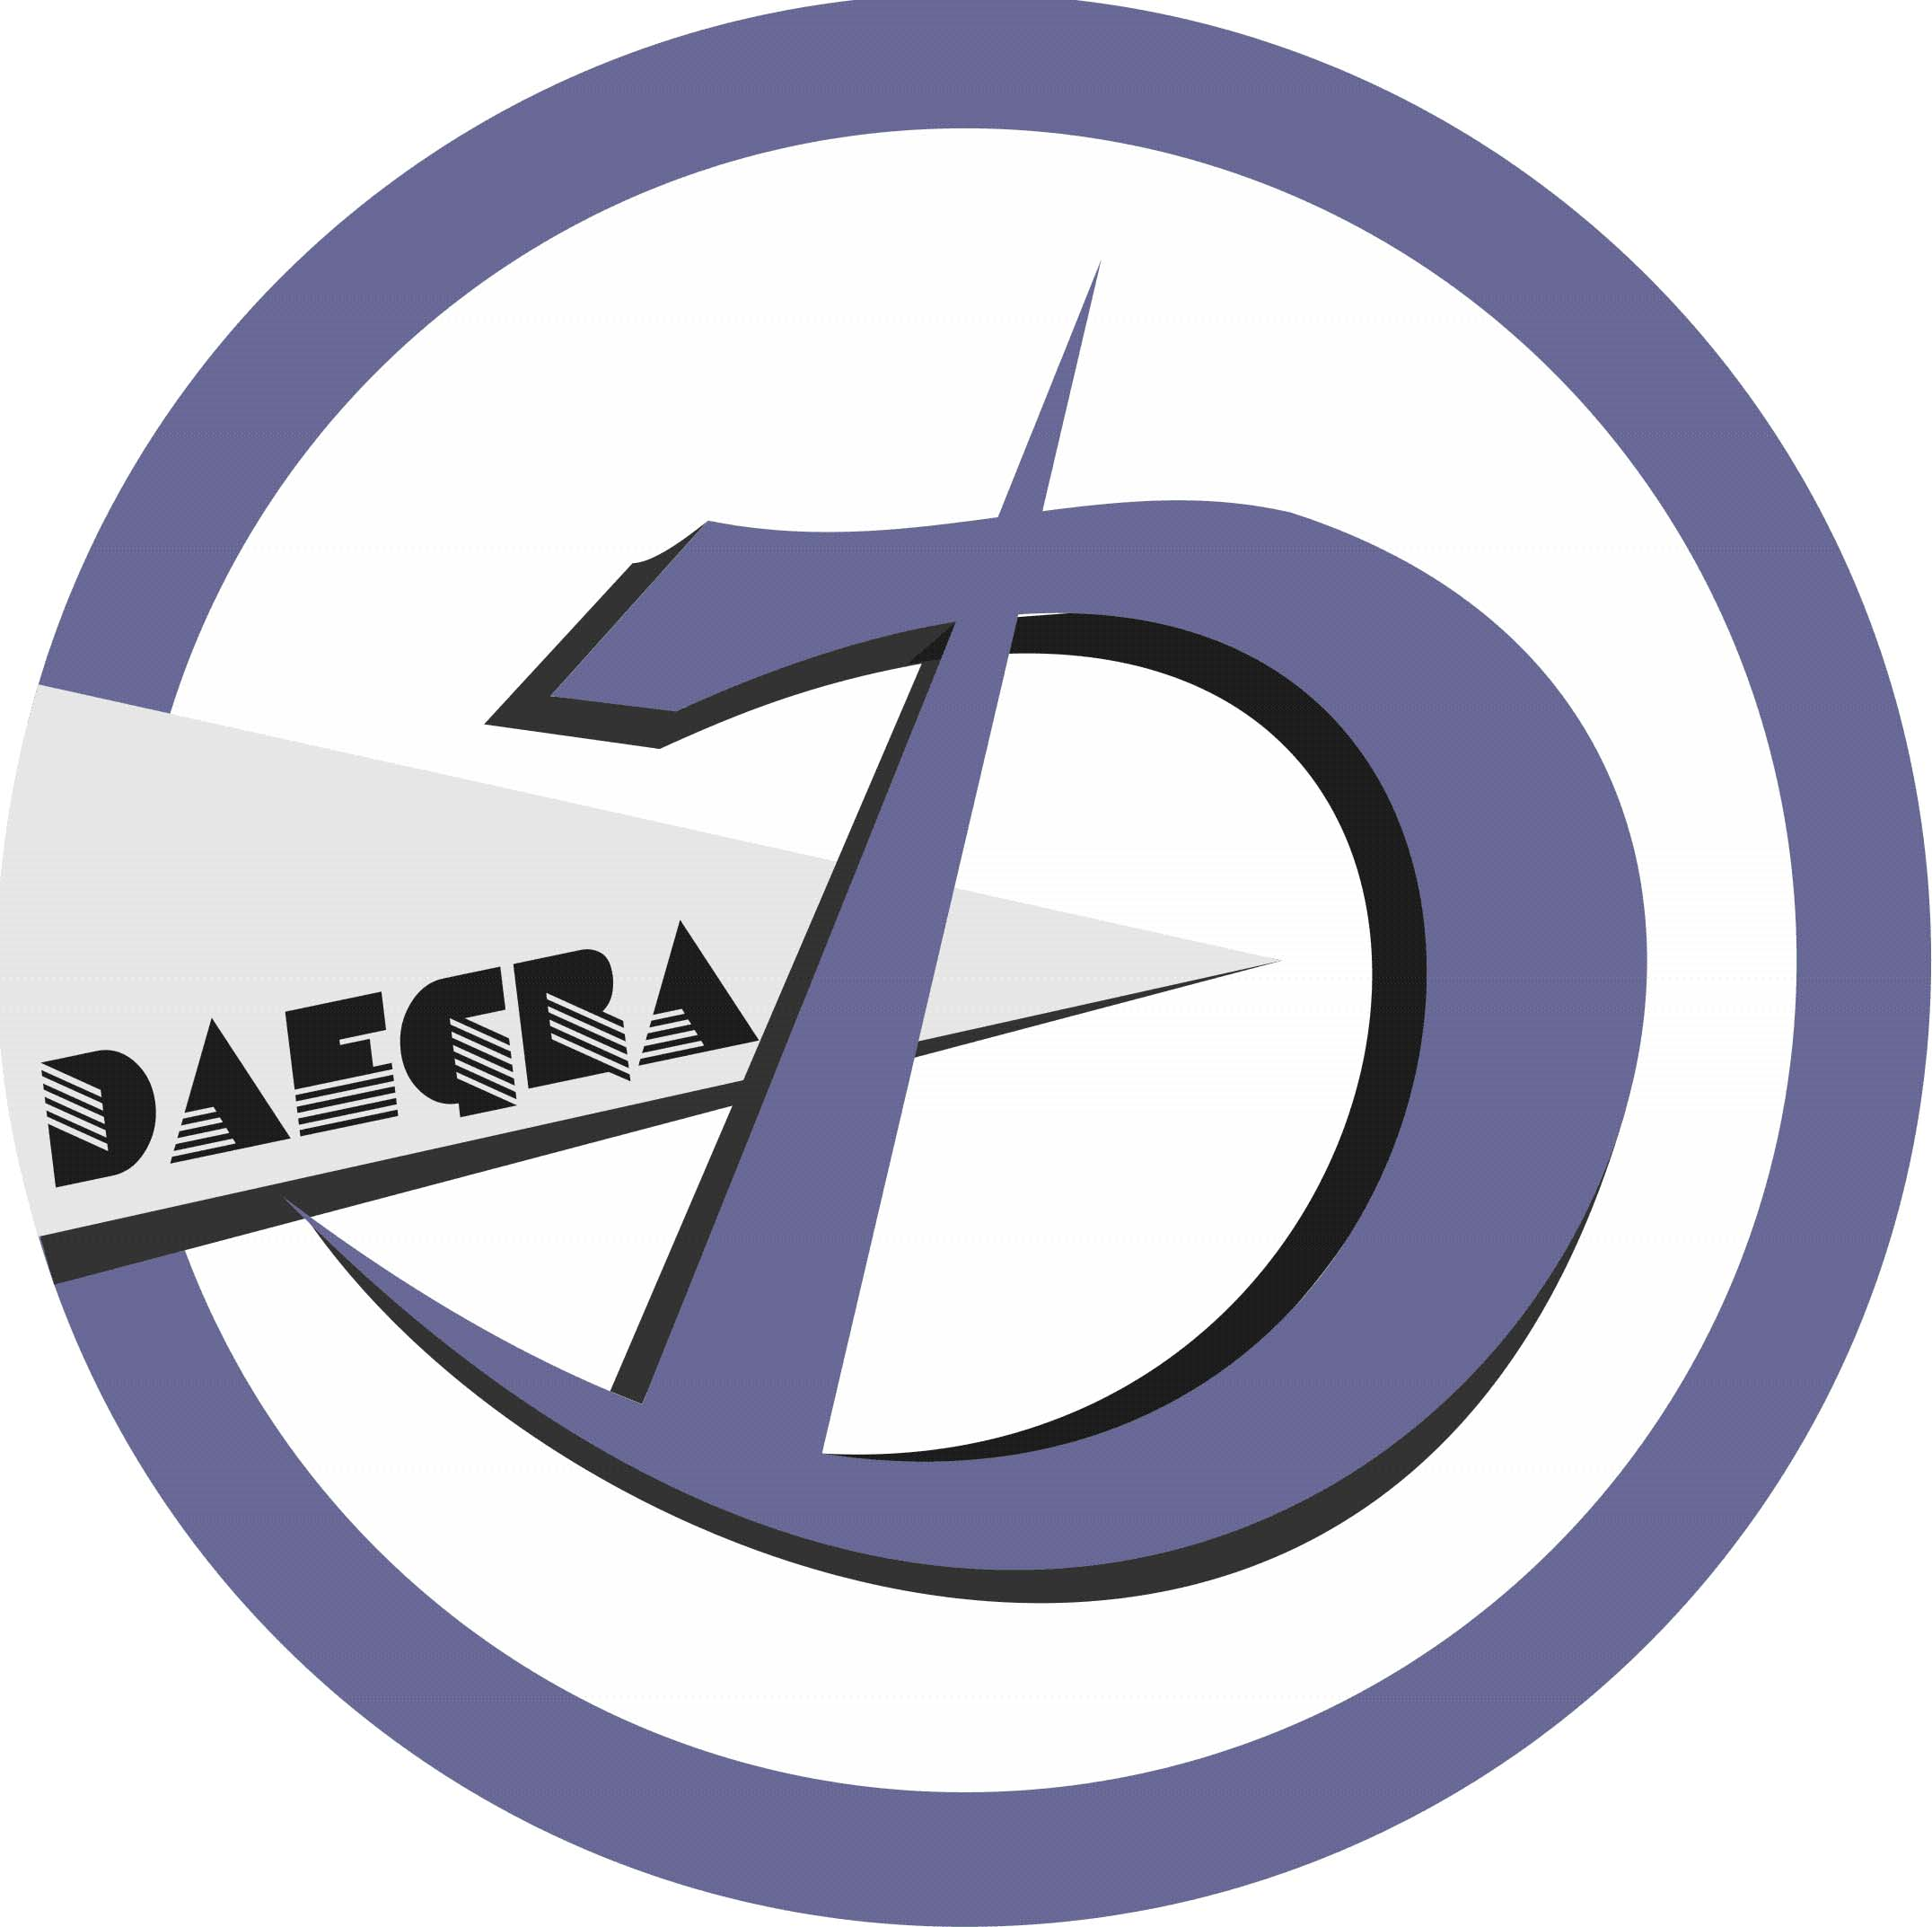 Daegra Placement Company Logo